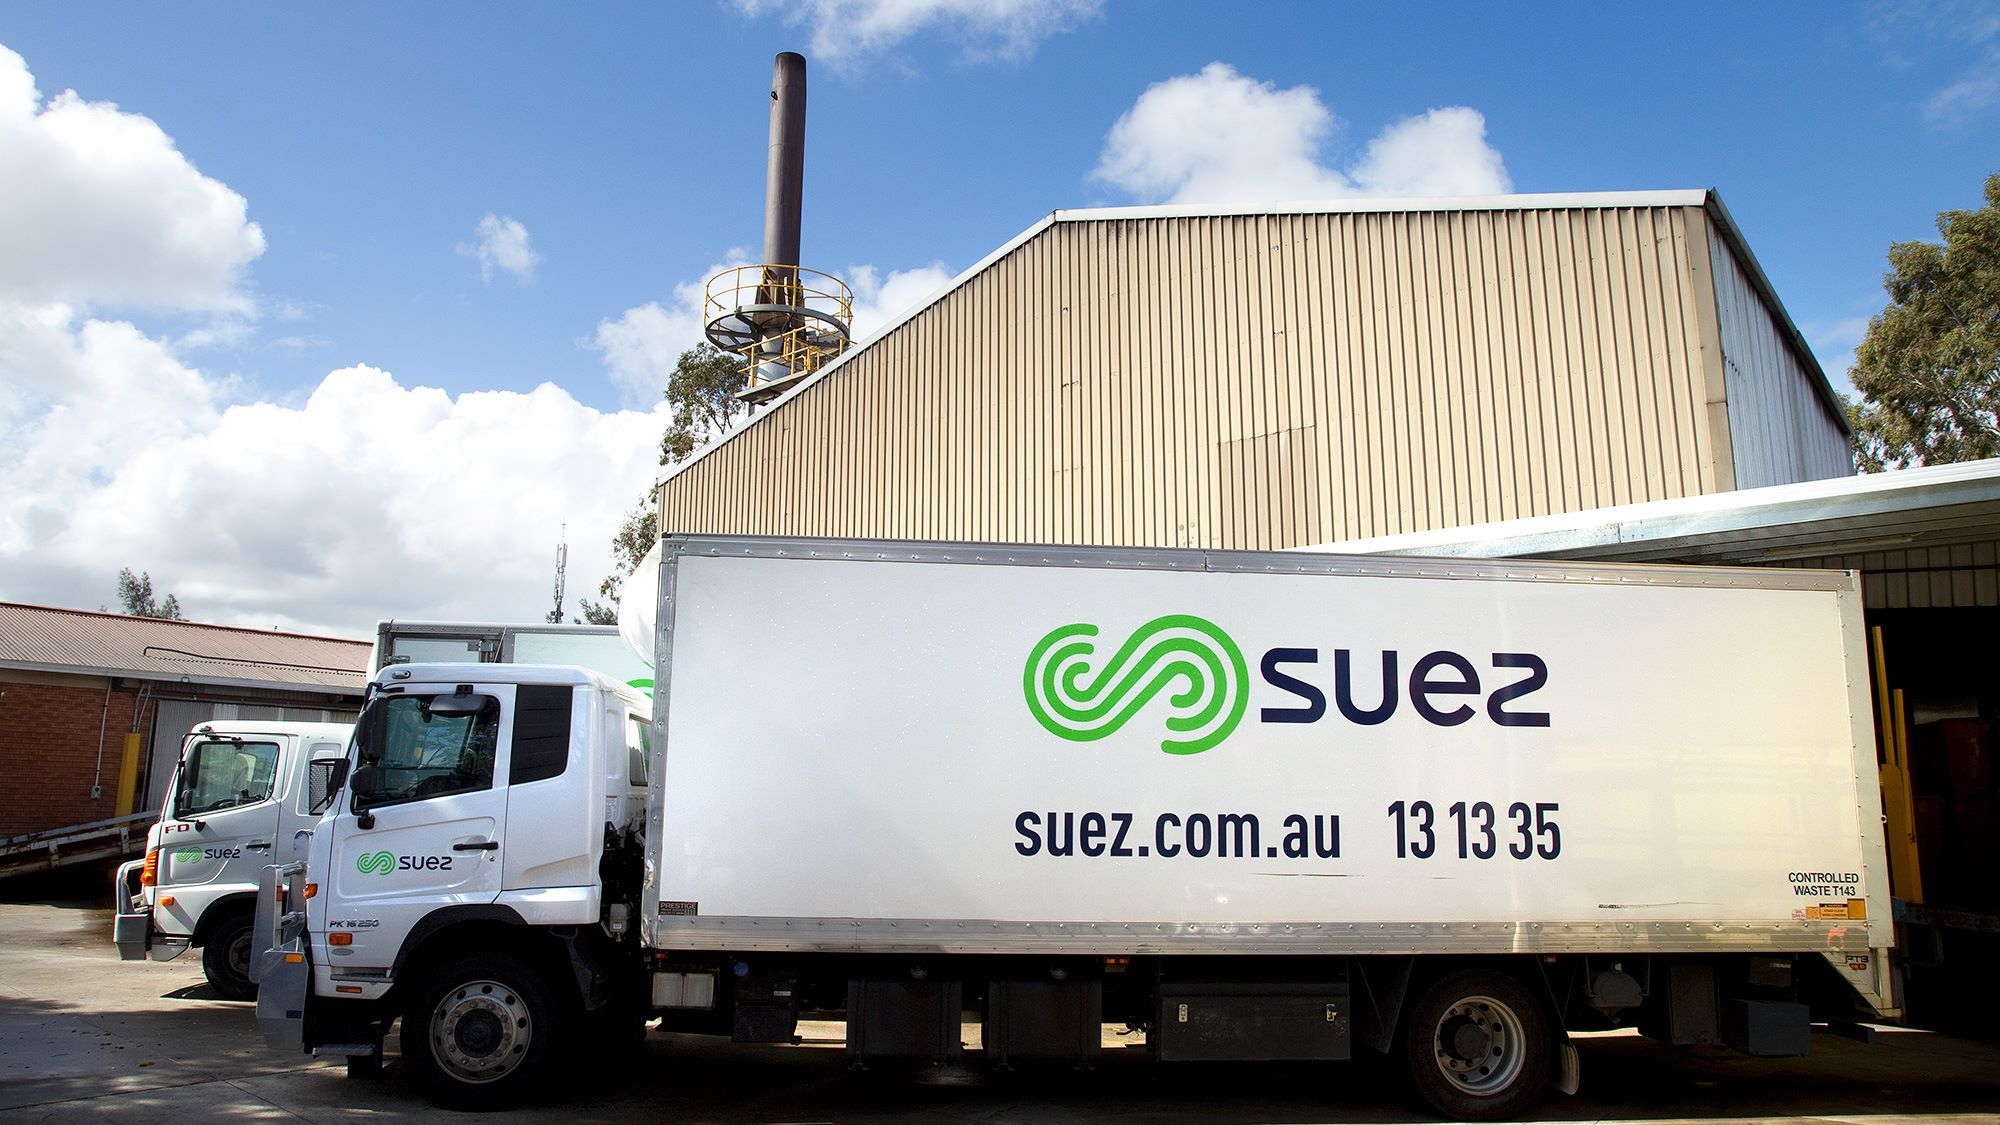 SUEZ Medical Waste Facilities header image. Image of SUEZ medical pantech trucks outside Welshpool Medical Waste Facility, Perth.